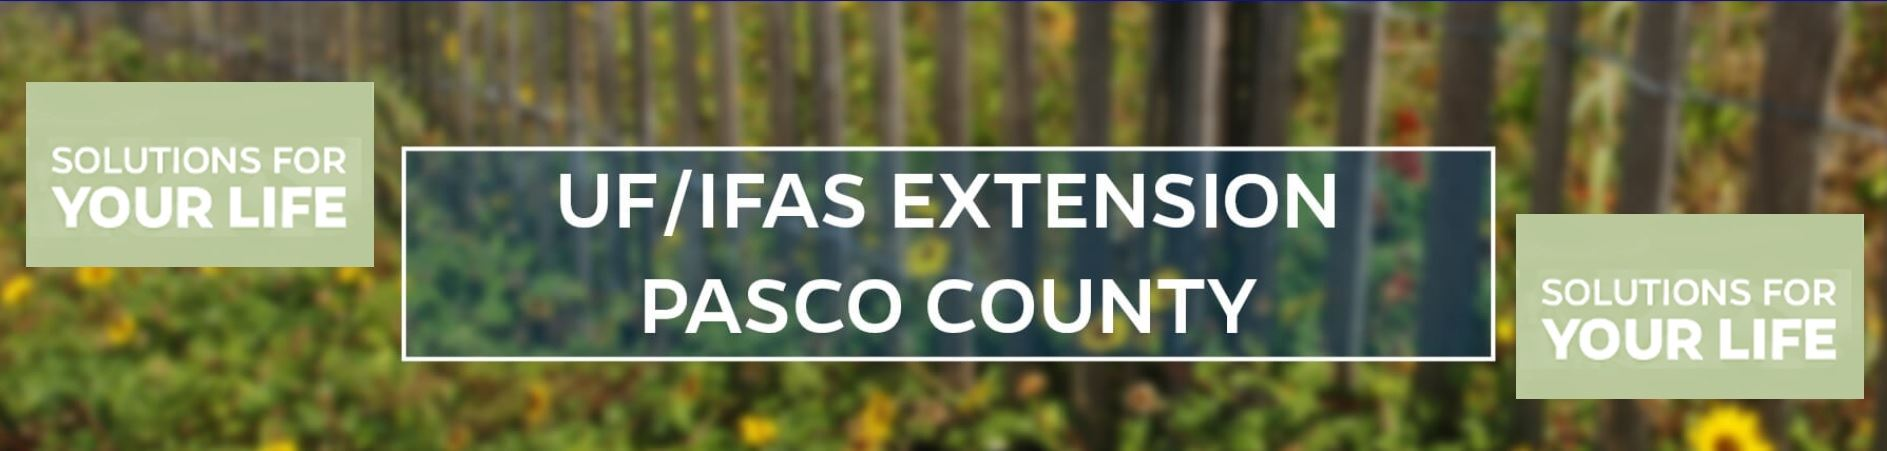 UF IFAS Pasco Extension Title Banner